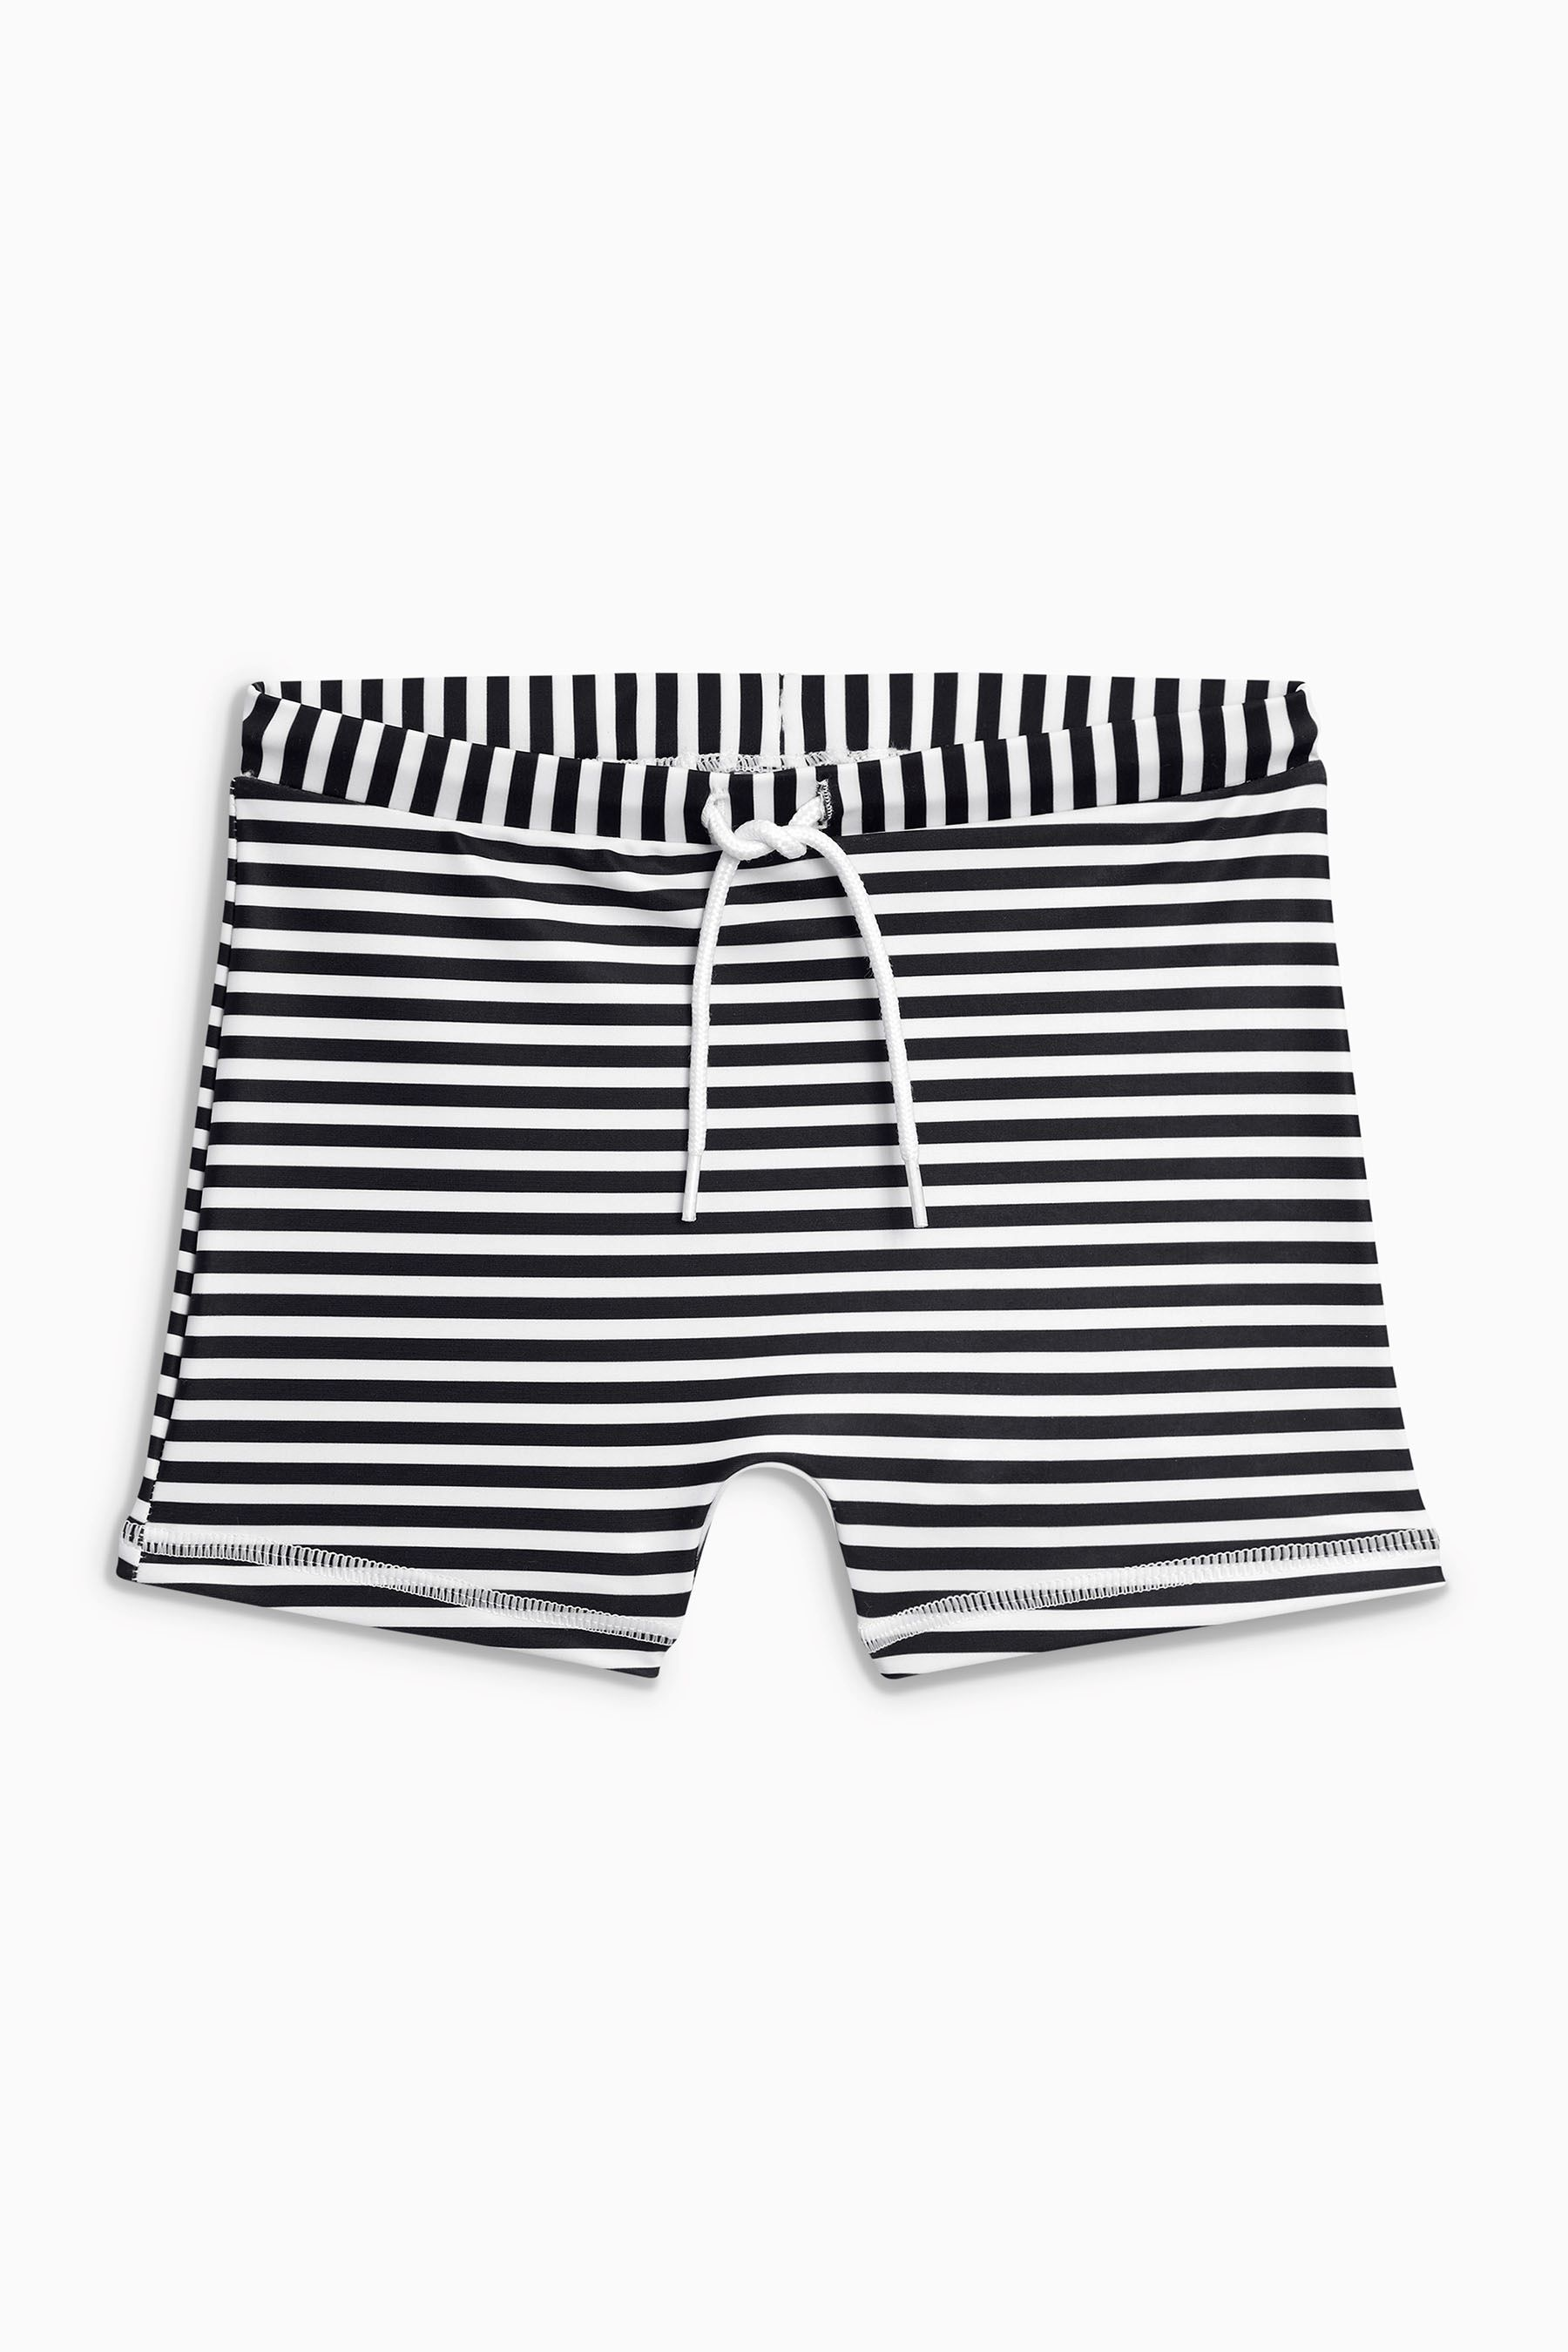 black-white-stripe-swim-trunks